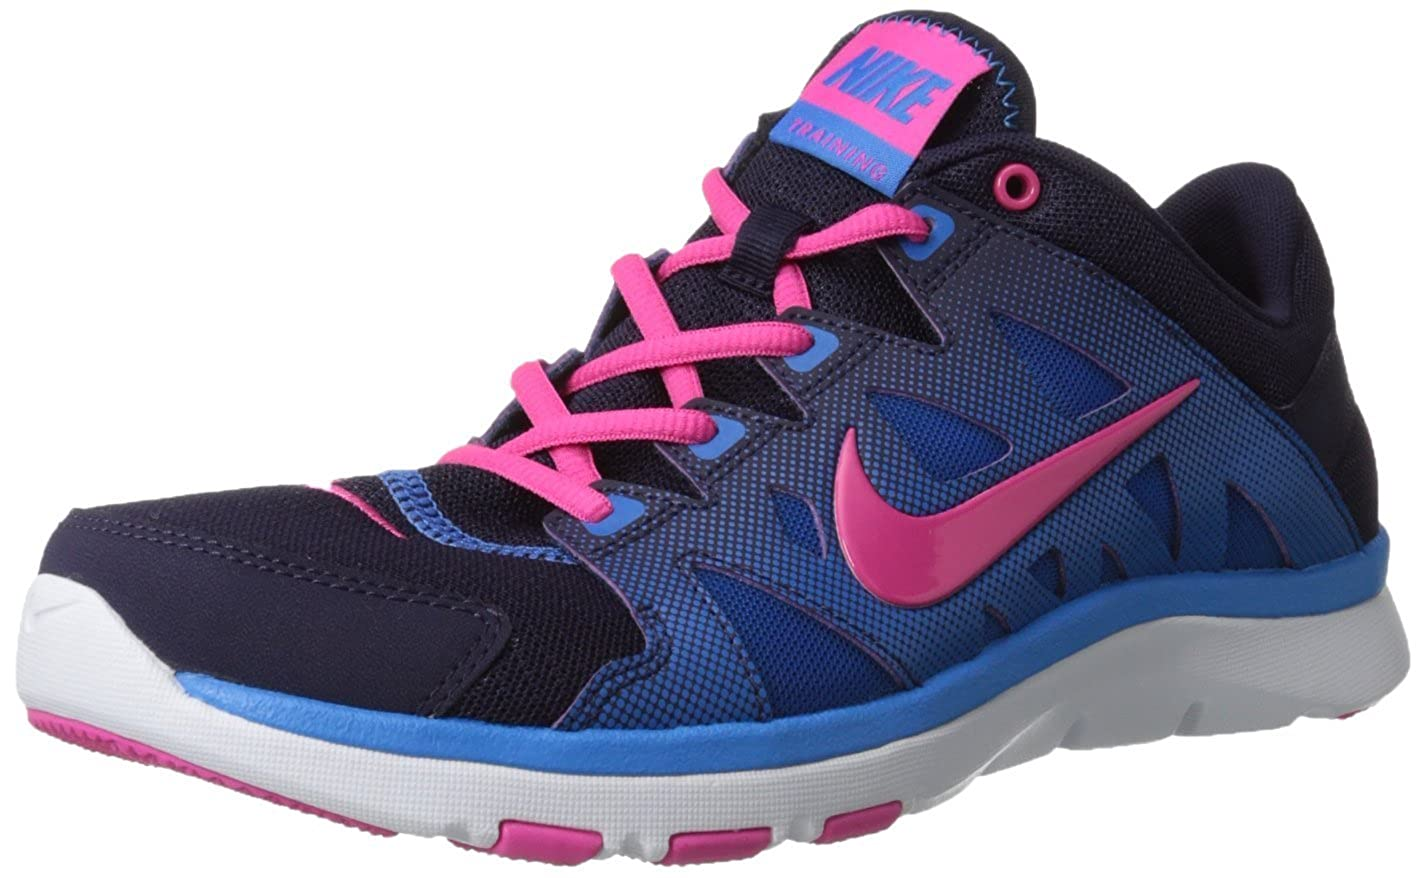 405a4f08bf4d Nike Womens Flex Supreme Tr 2 Training Shoes-purple Dynasty pink Flash   Amazon.co.uk  Shoes   Bags